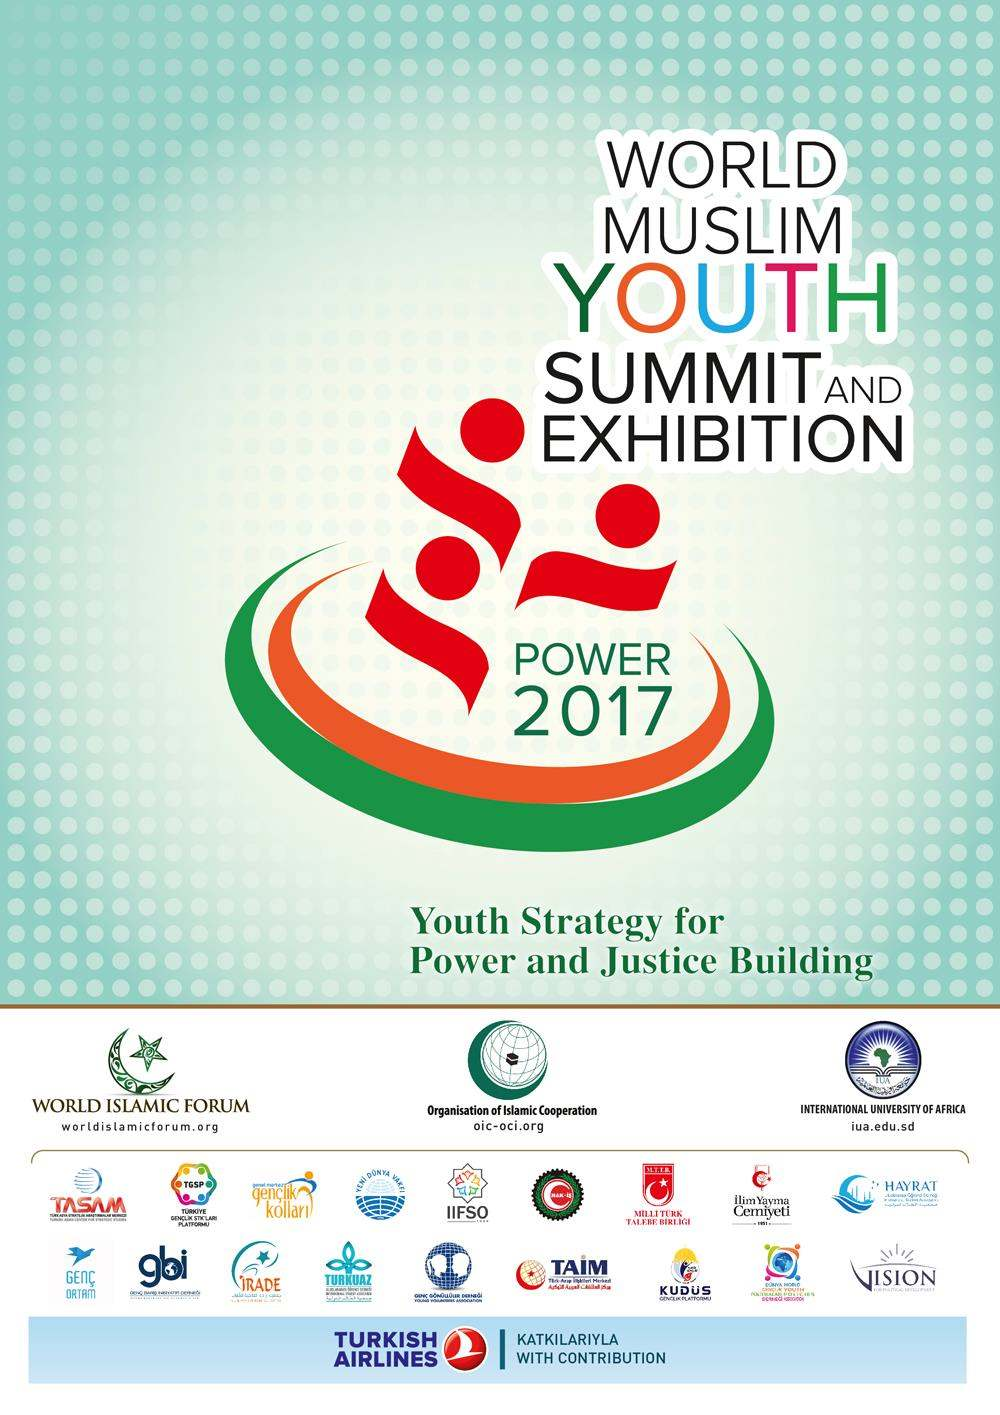 World Muslim Youth Summit and Exhibition | [POWER 2017